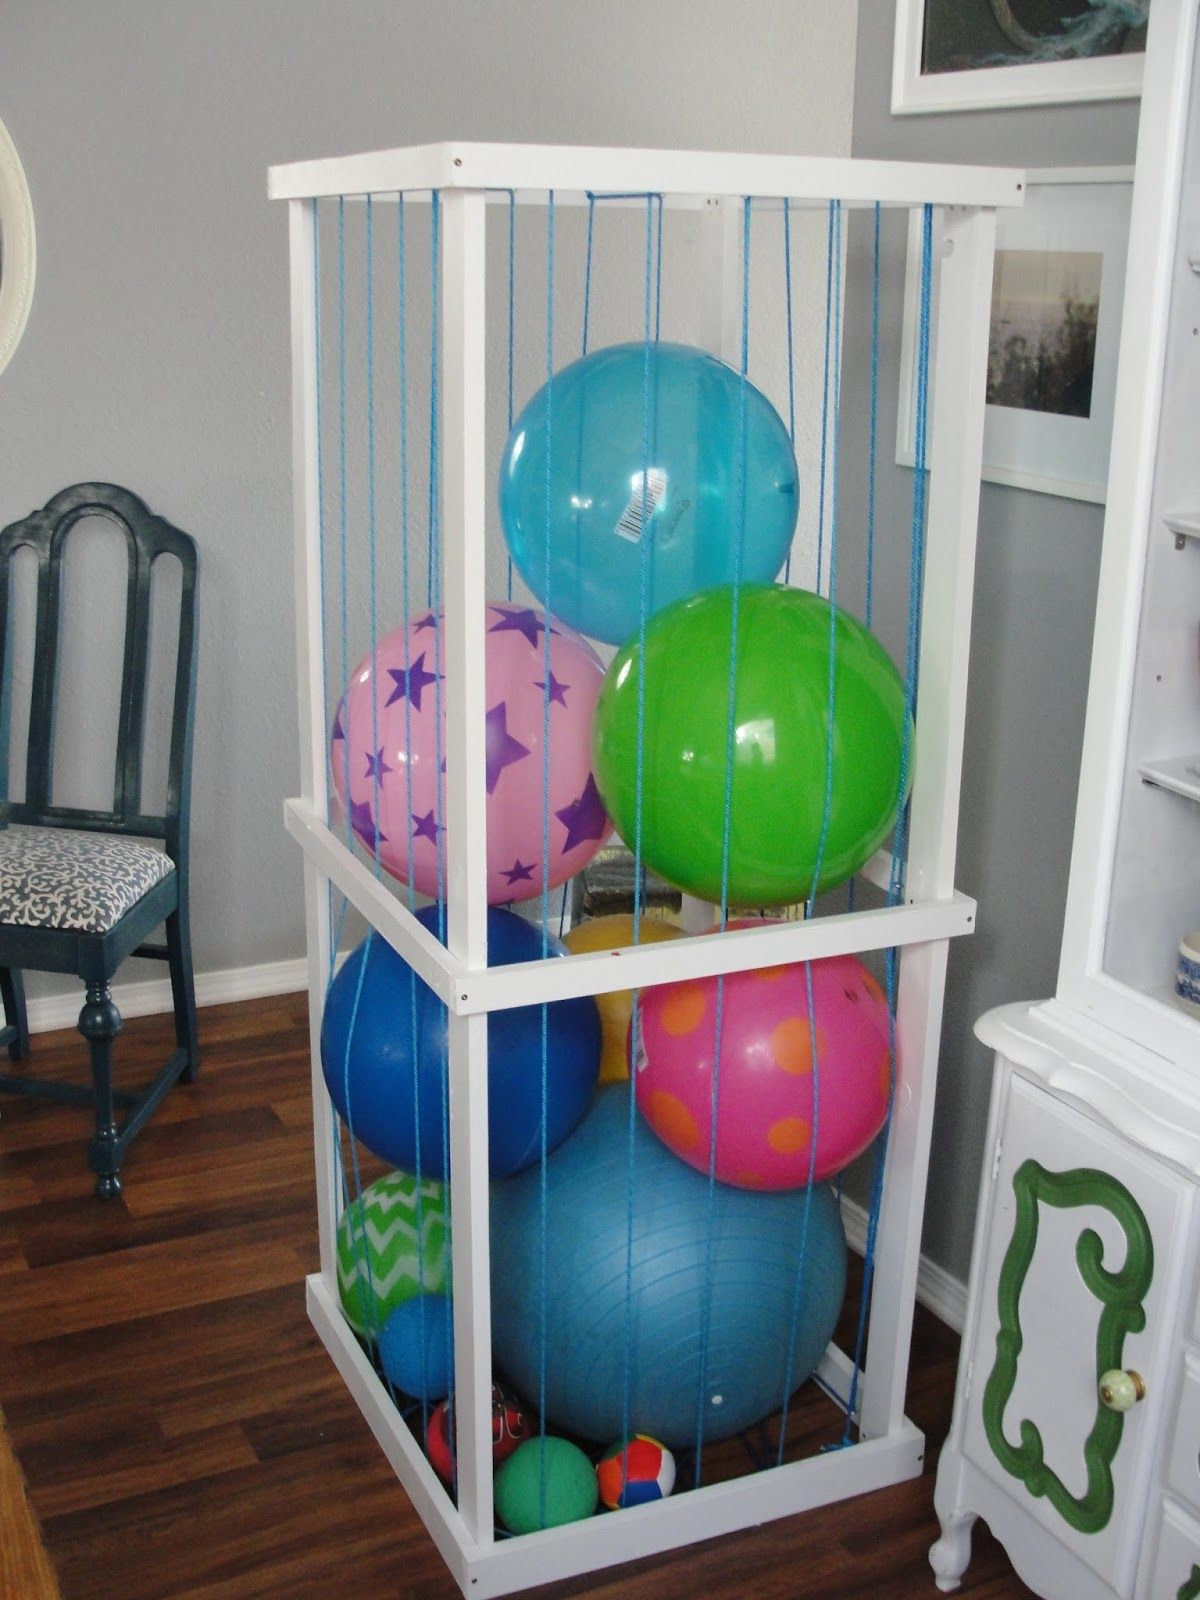 Diy Ball Pit Google Search Toy Room Organization Toy